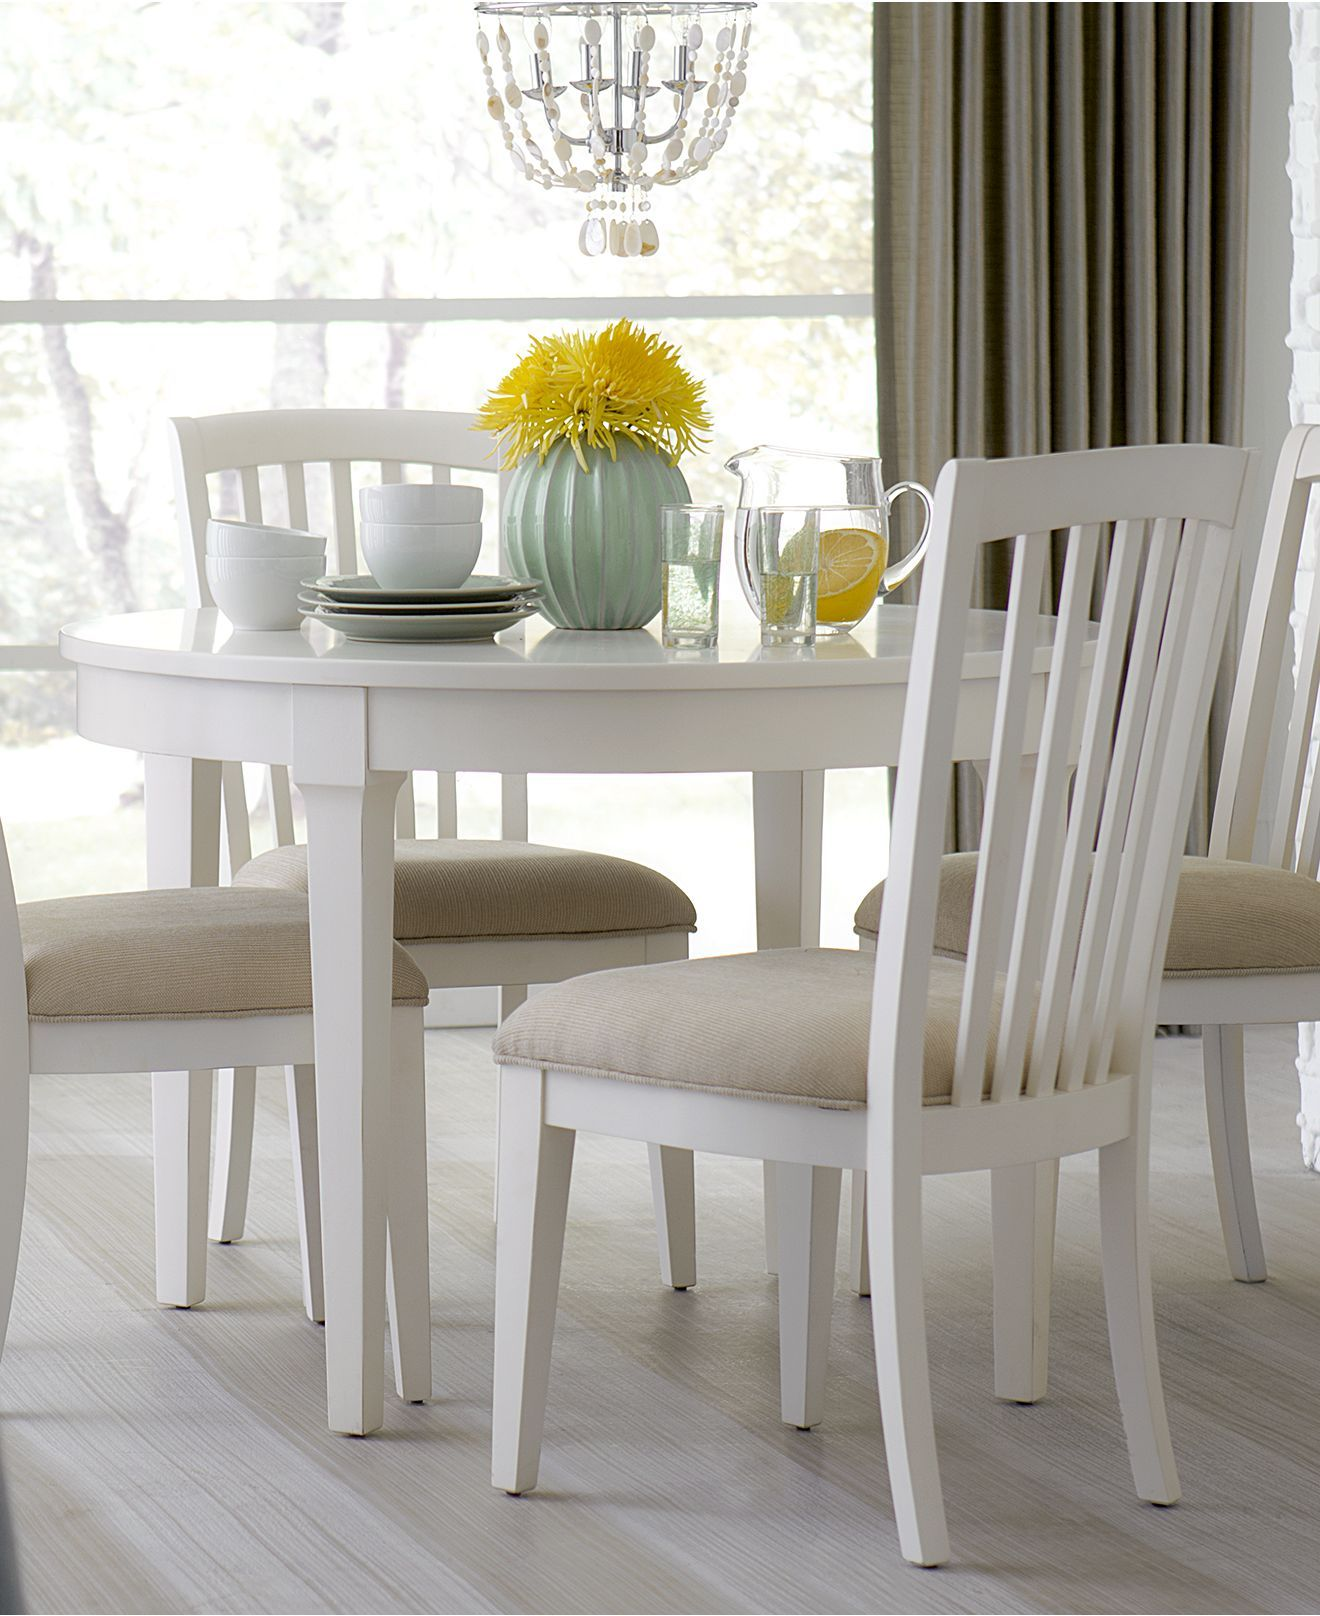 Luxury Small Round Dining Table for 4